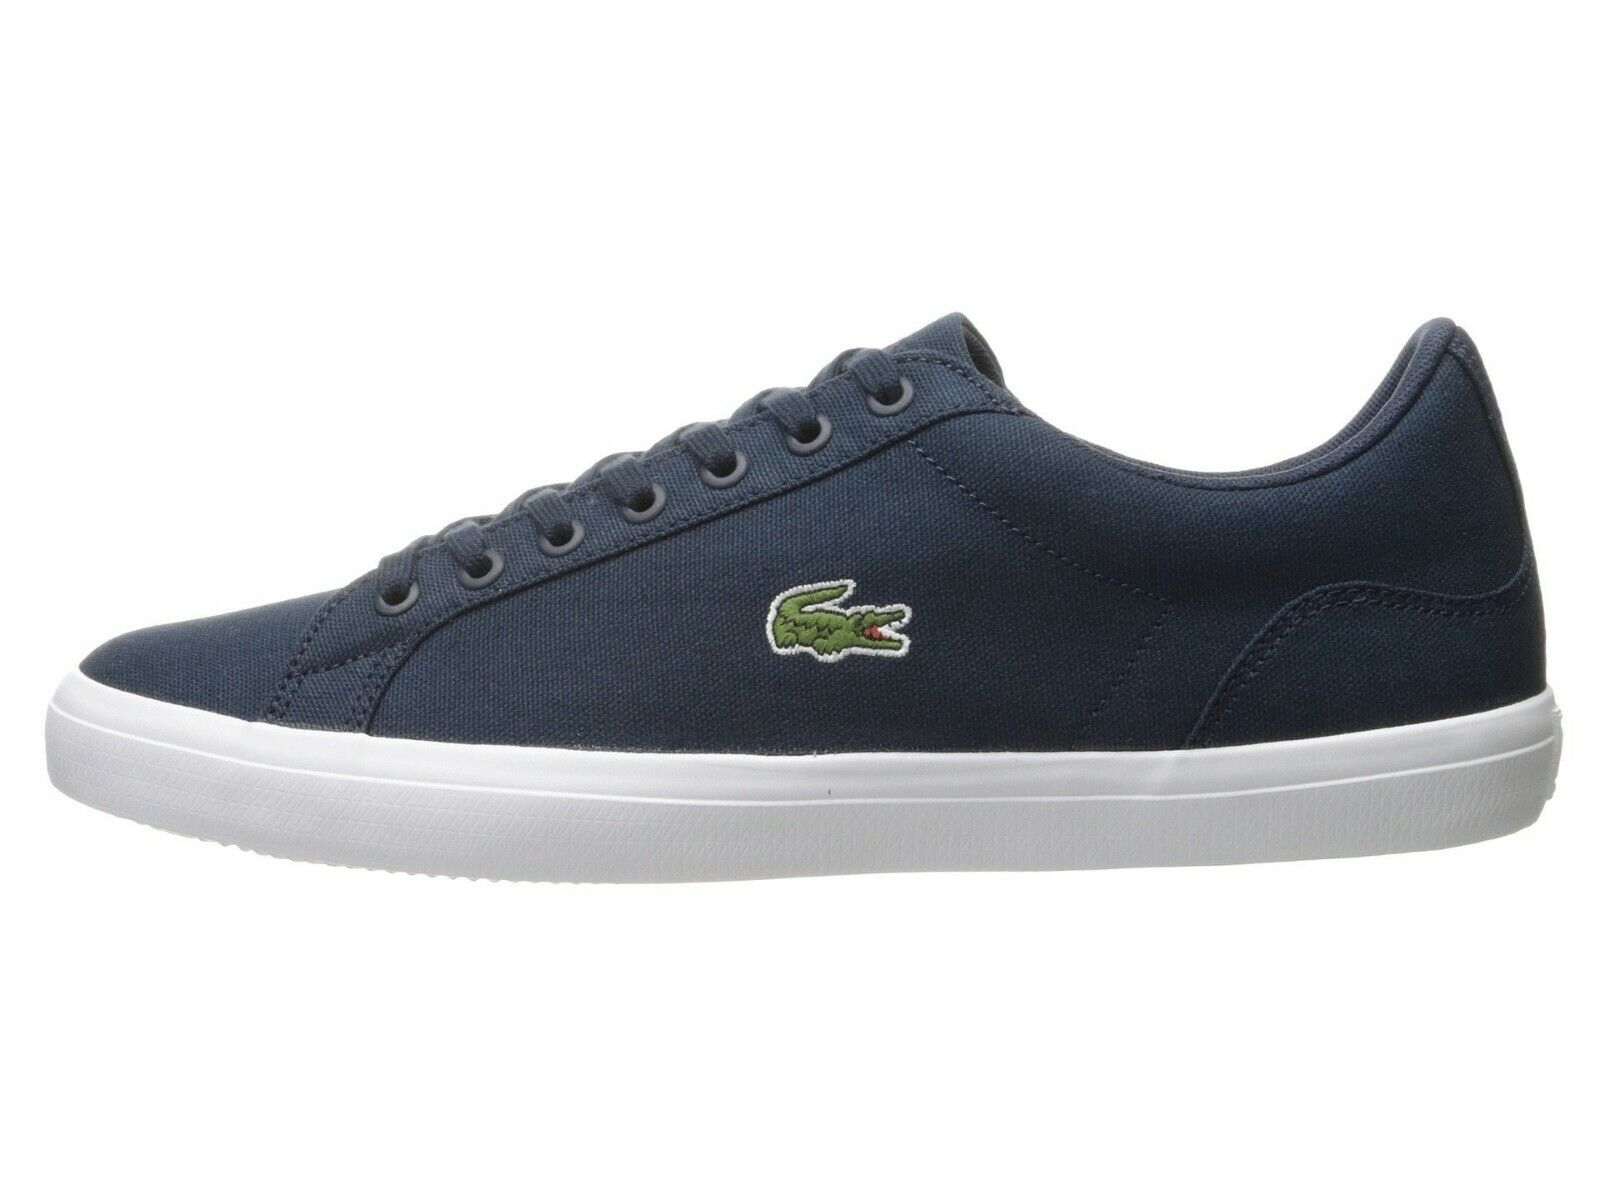 LACOSTE Lerond BL 2 Men's Croc Logo Casual Slip On Loafer shoes Sneakers Navy